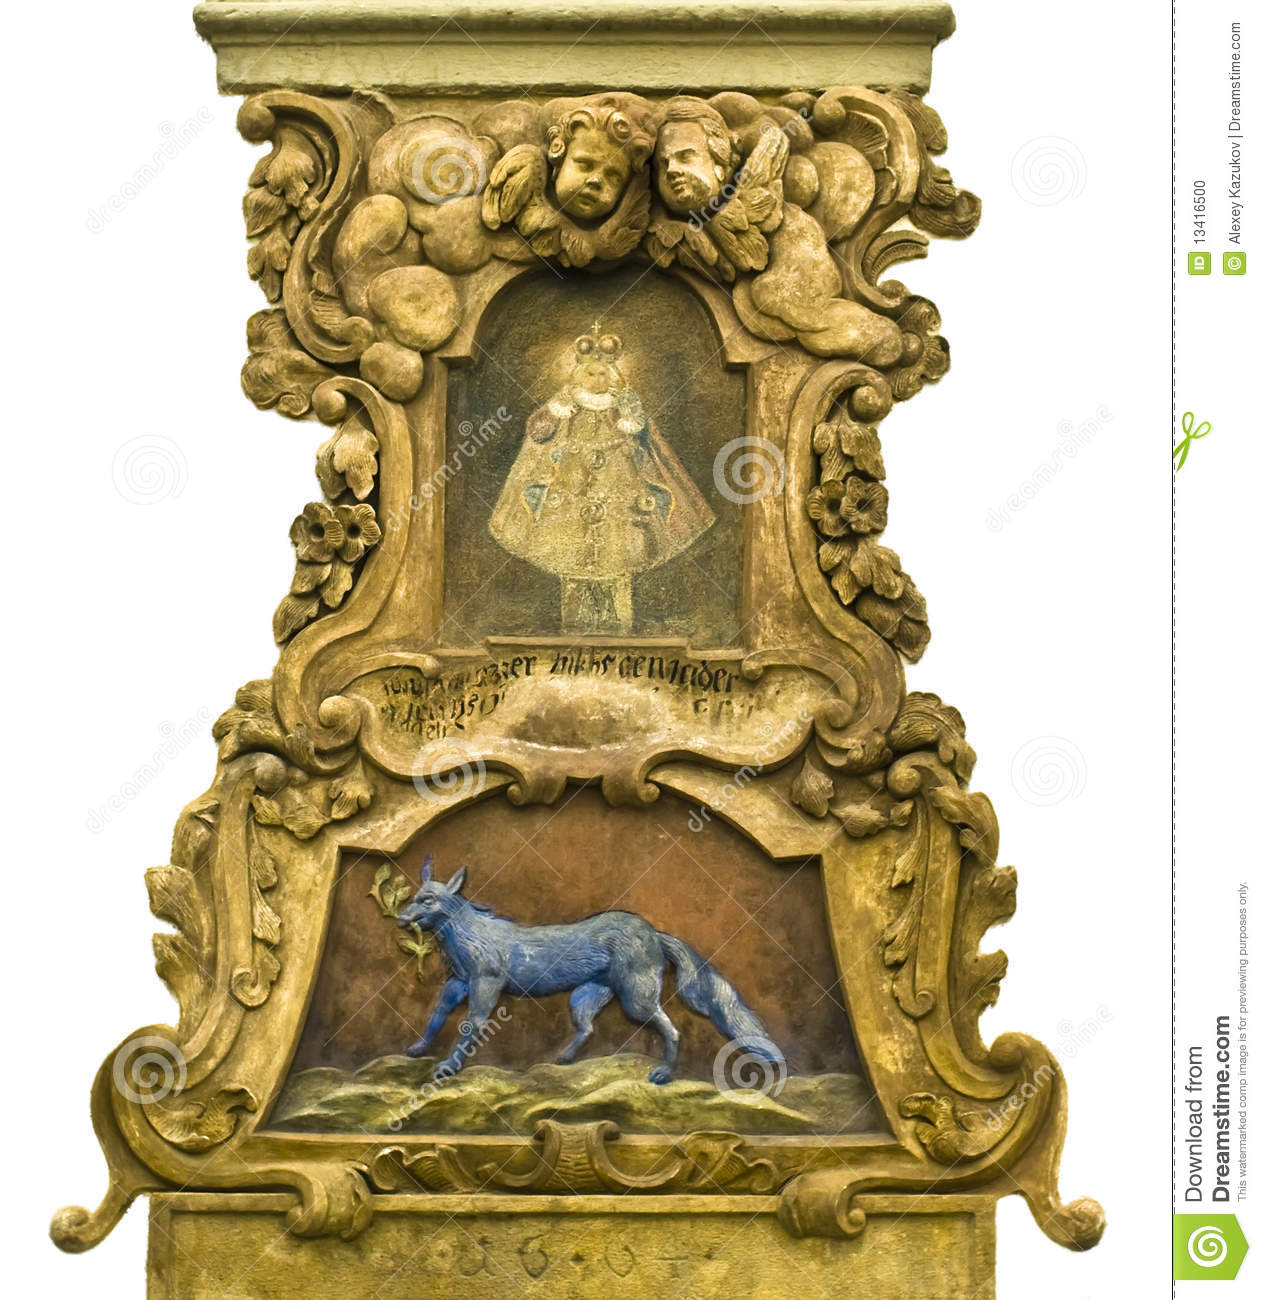 Baroque medieval decor in prague stock photo image 13416500 for Baroque home accessories